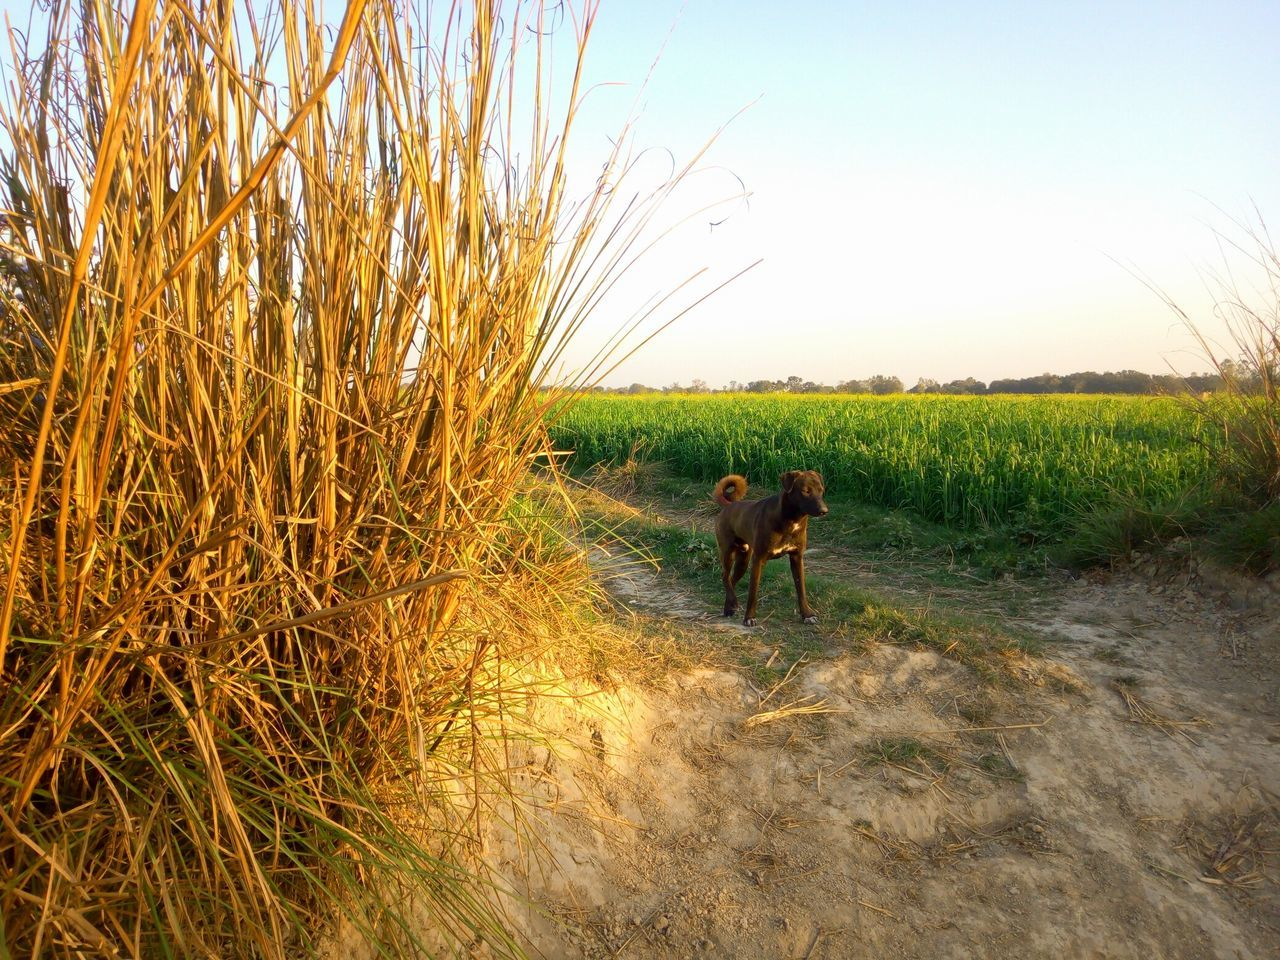 Domestic Animals Mammal Animal Themes Nature One Animal Pets Tree Livestock Growth No People Beauty In Nature Agriculture Outdoors Sky Dog Day Grass Wheat Field Full Frame EyeEm Best Shots - No Edit Landscape Beauty In Nature Dogs Of EyeEm Dog Photography Dog Walking